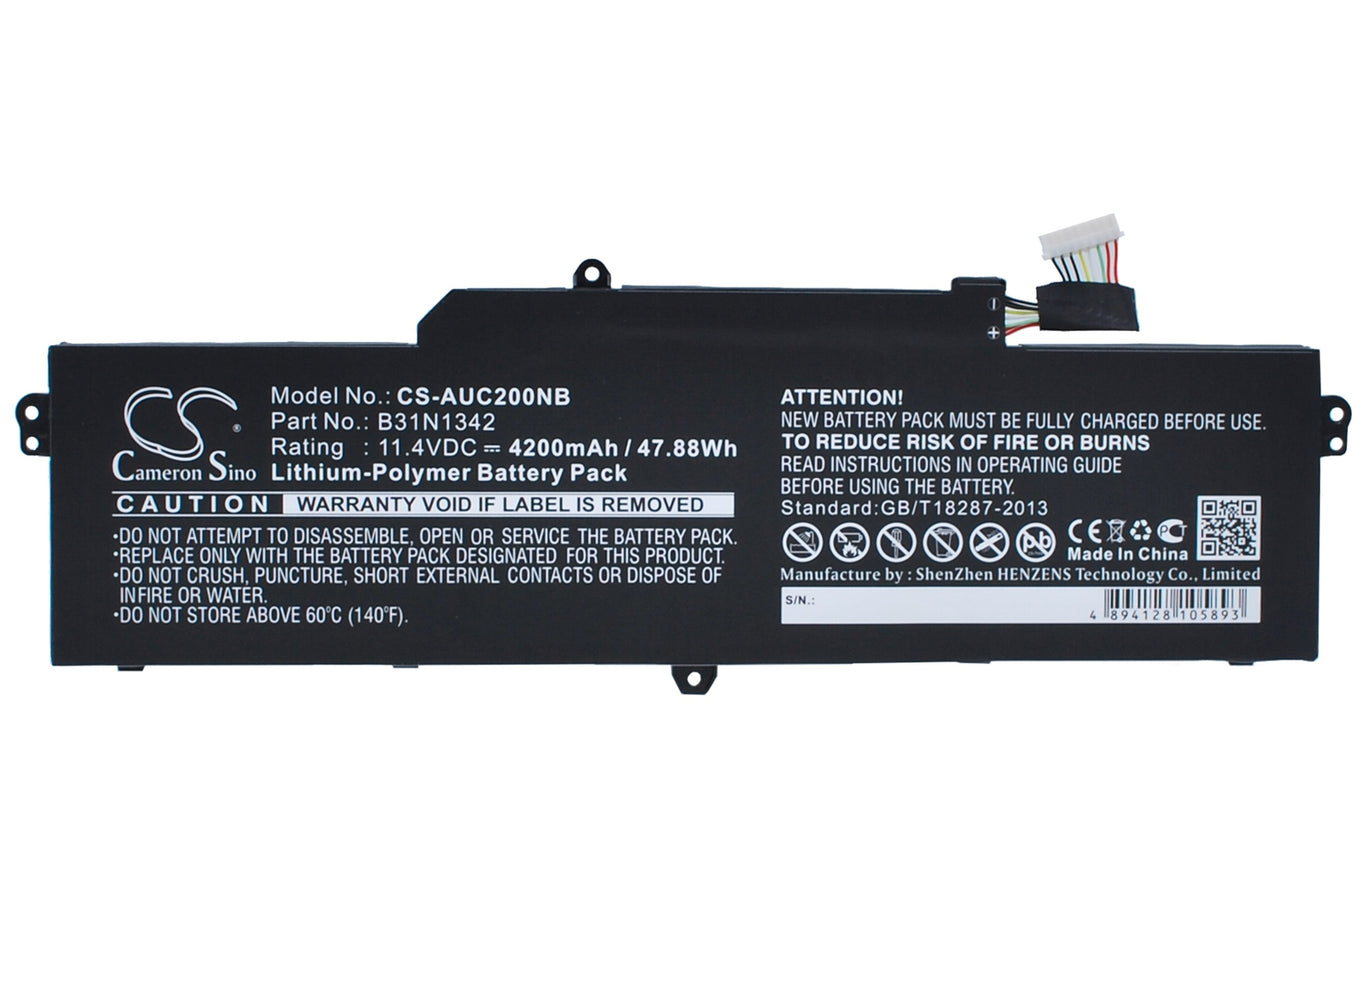 CS-AUC200NB Cameron Sino Battery